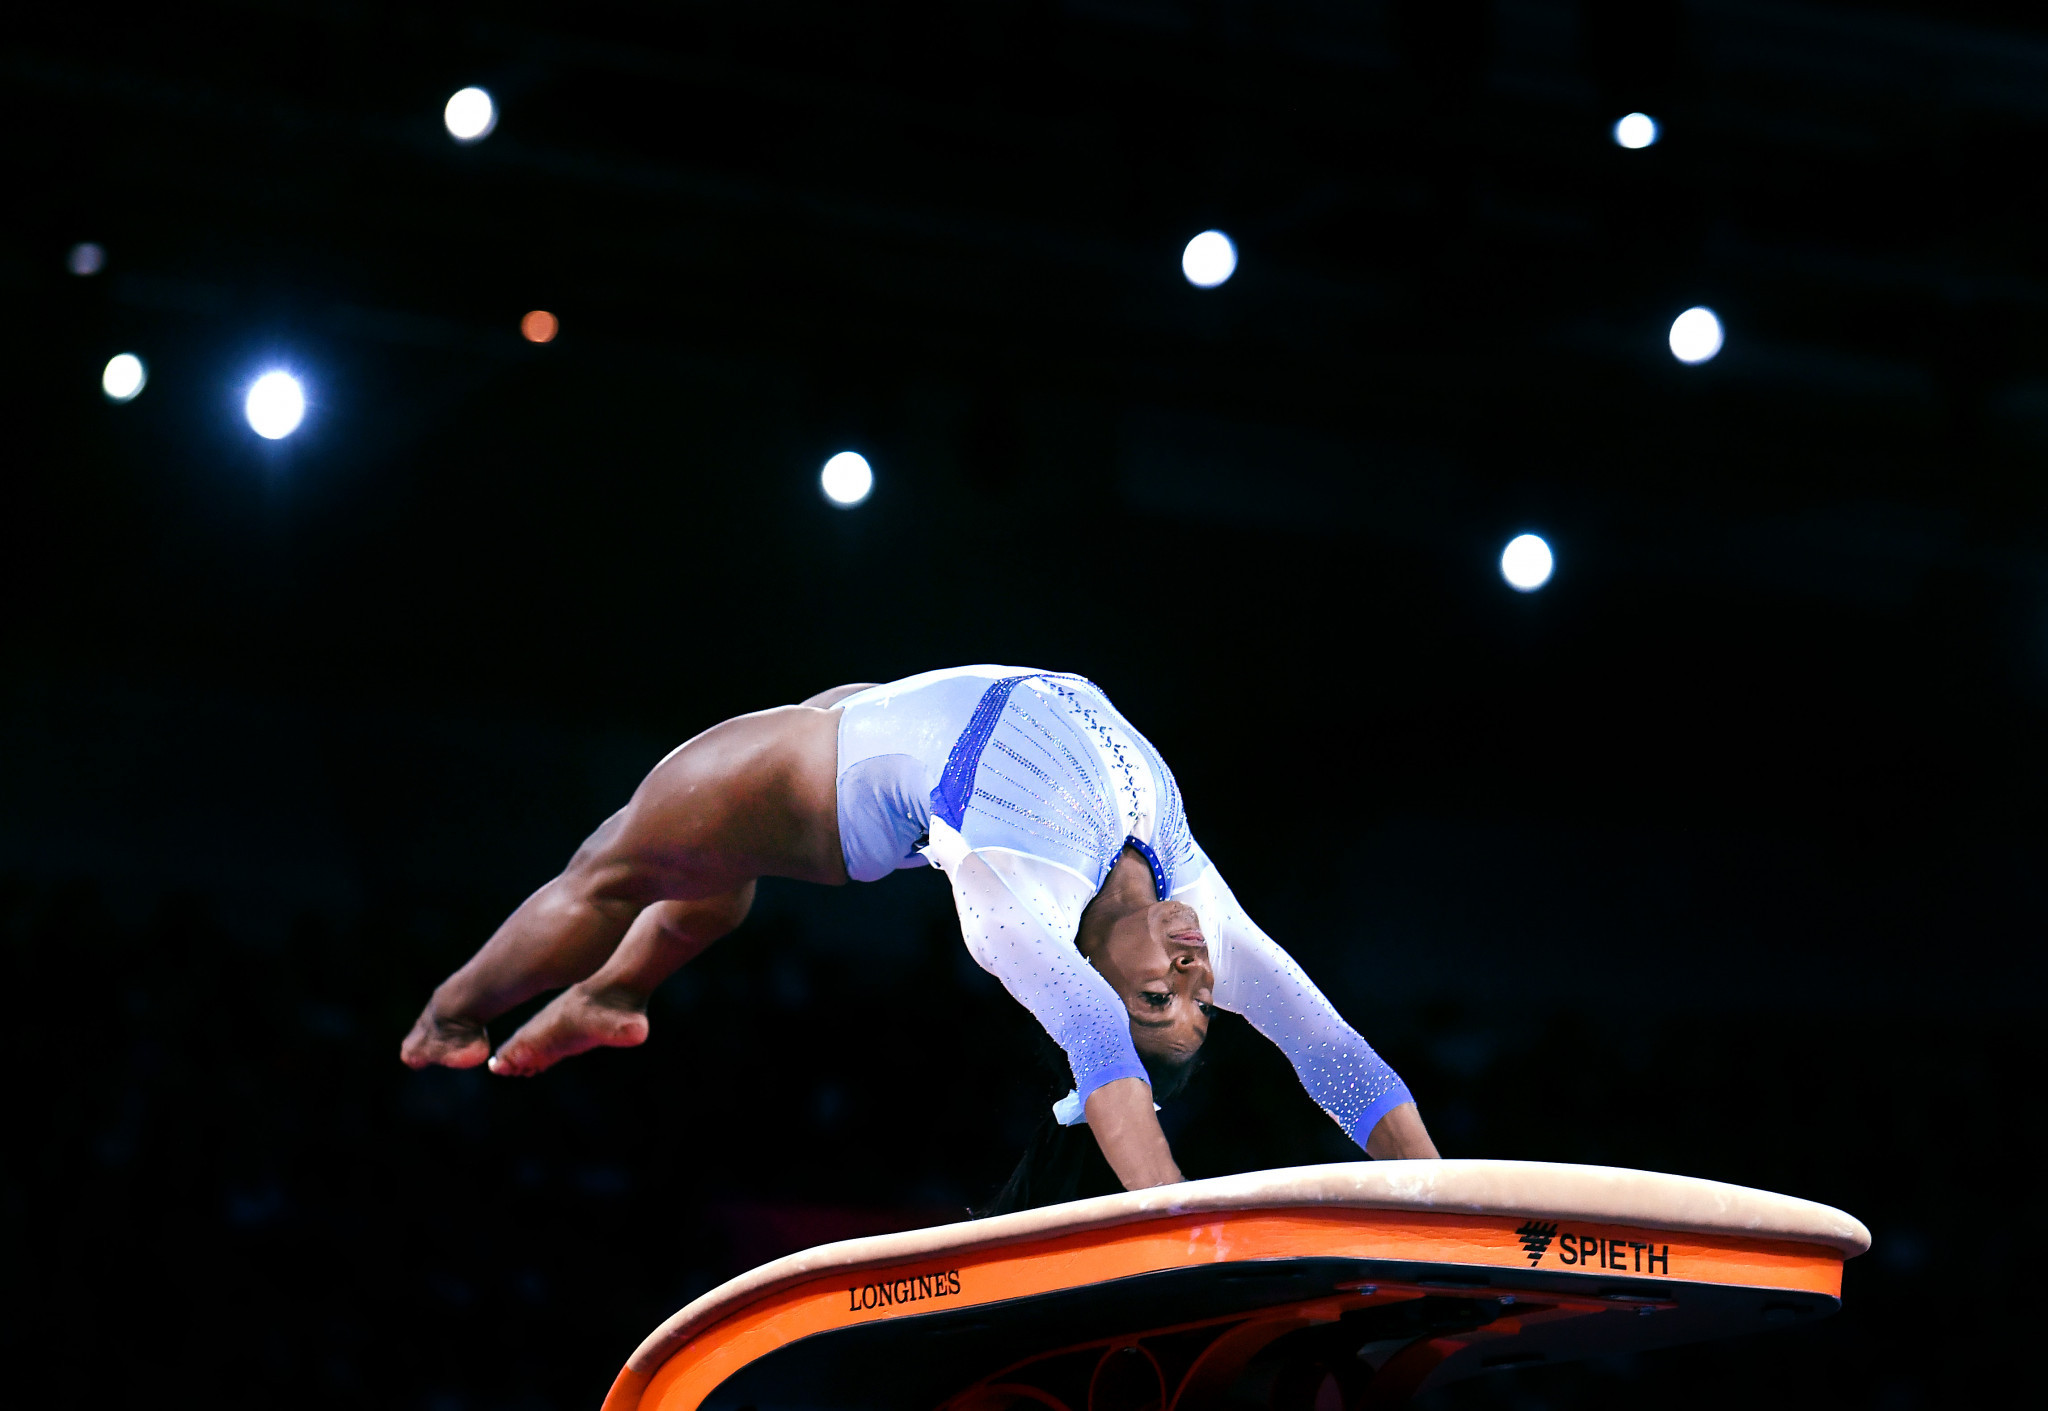 Biles stars in women's all-around qualifying at Artistic Gymnastics World Championships